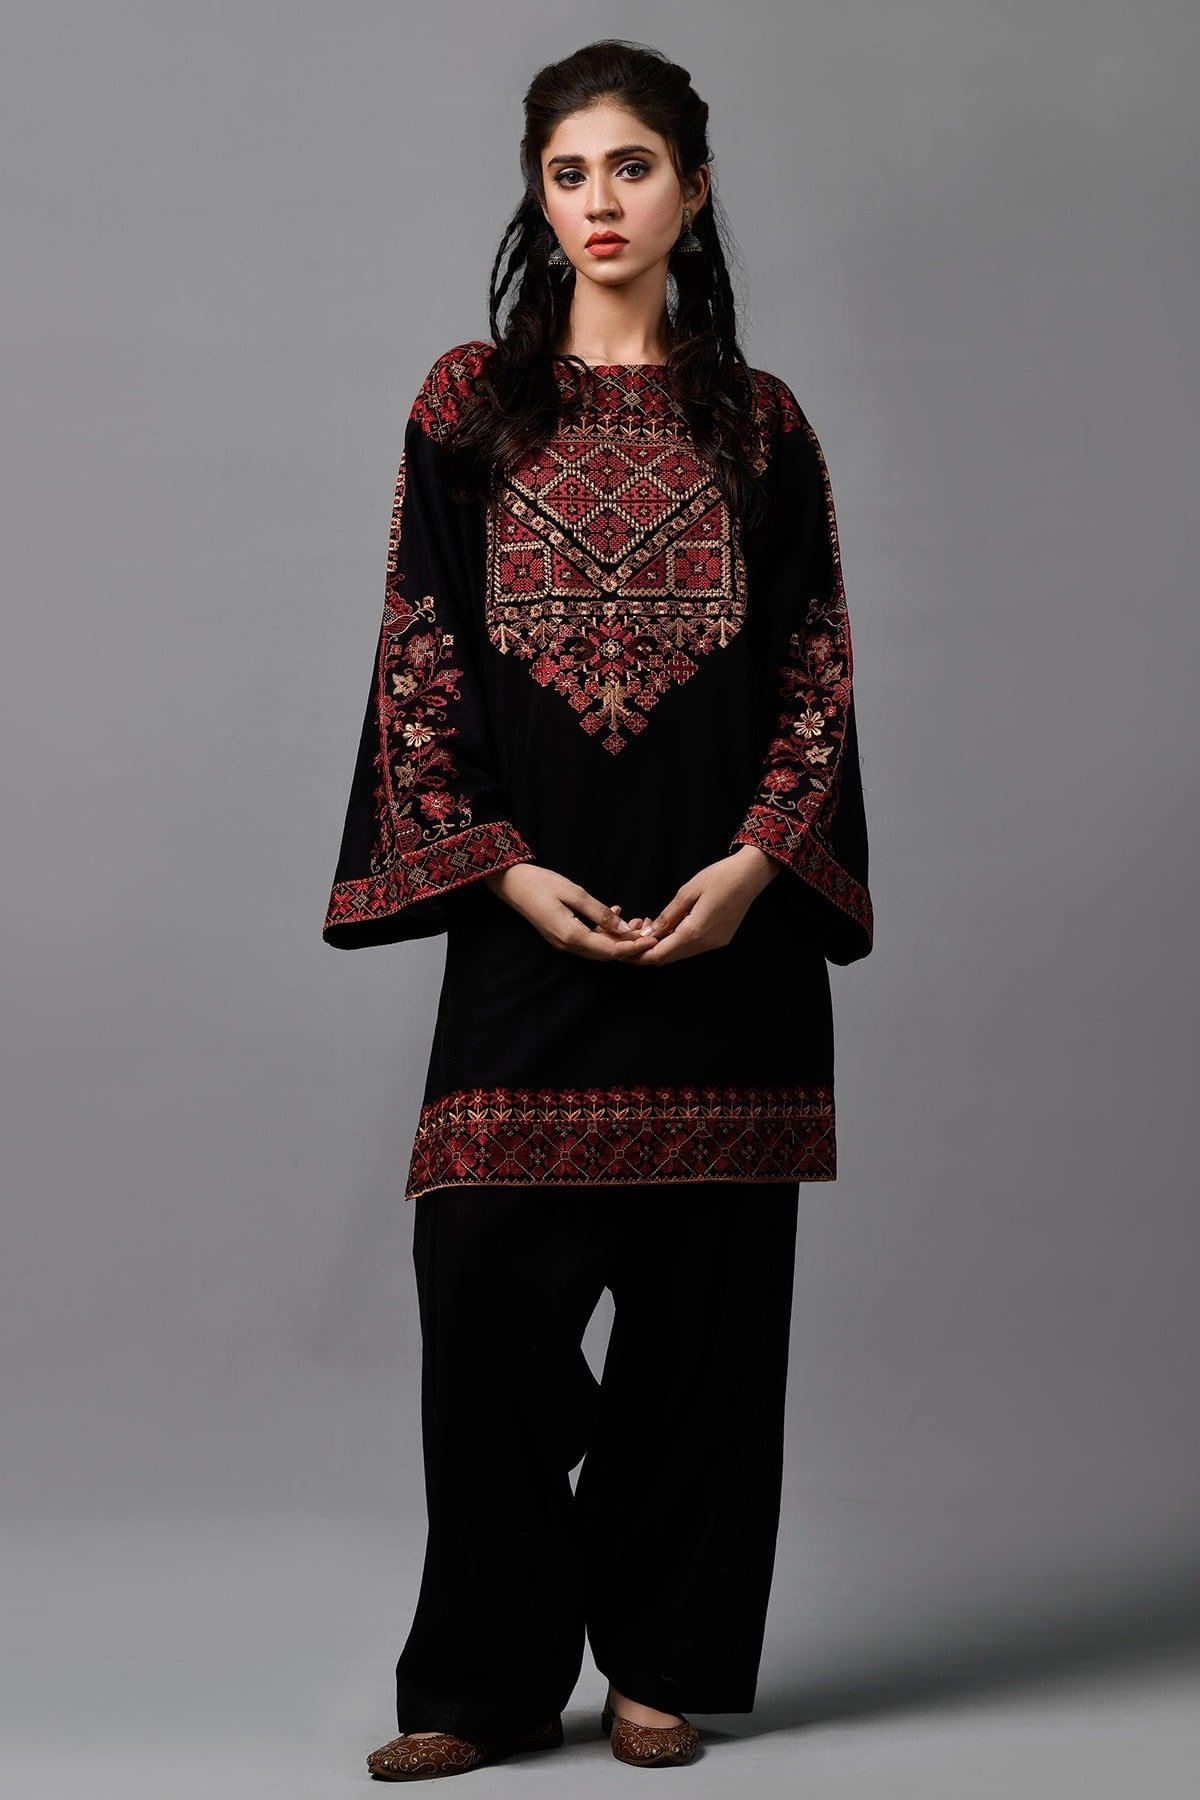 Kayseria Black k-Embroided 2pc khaddar dress shirt & trouser. - gracestore.pk